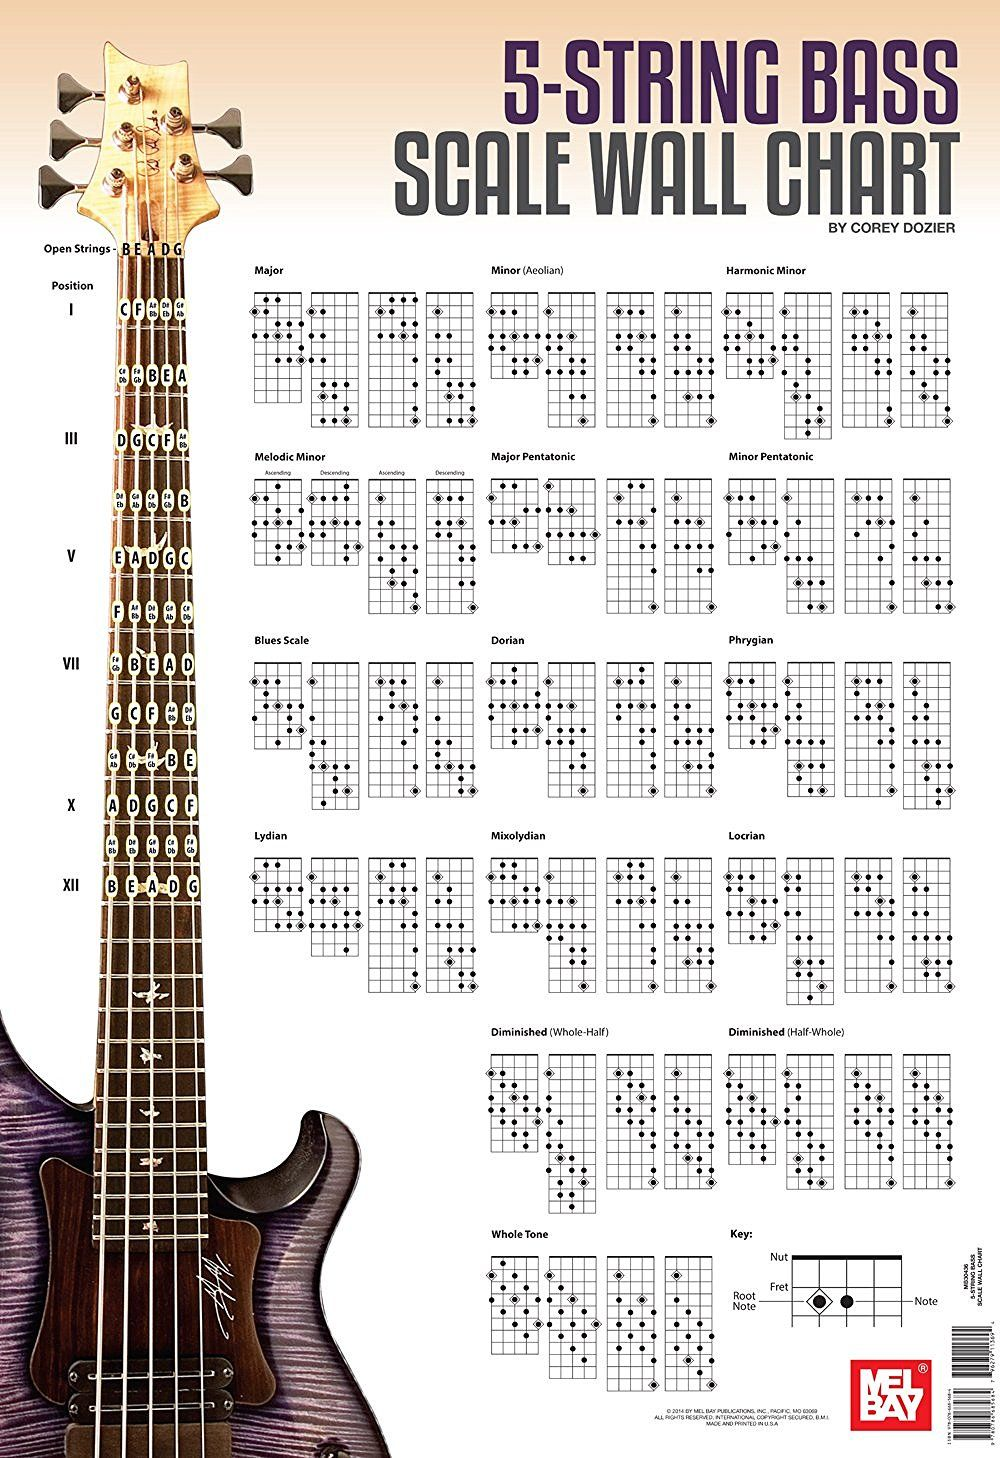 5 String Bass Scale Wall Chart Home Recording Studio Pinterest